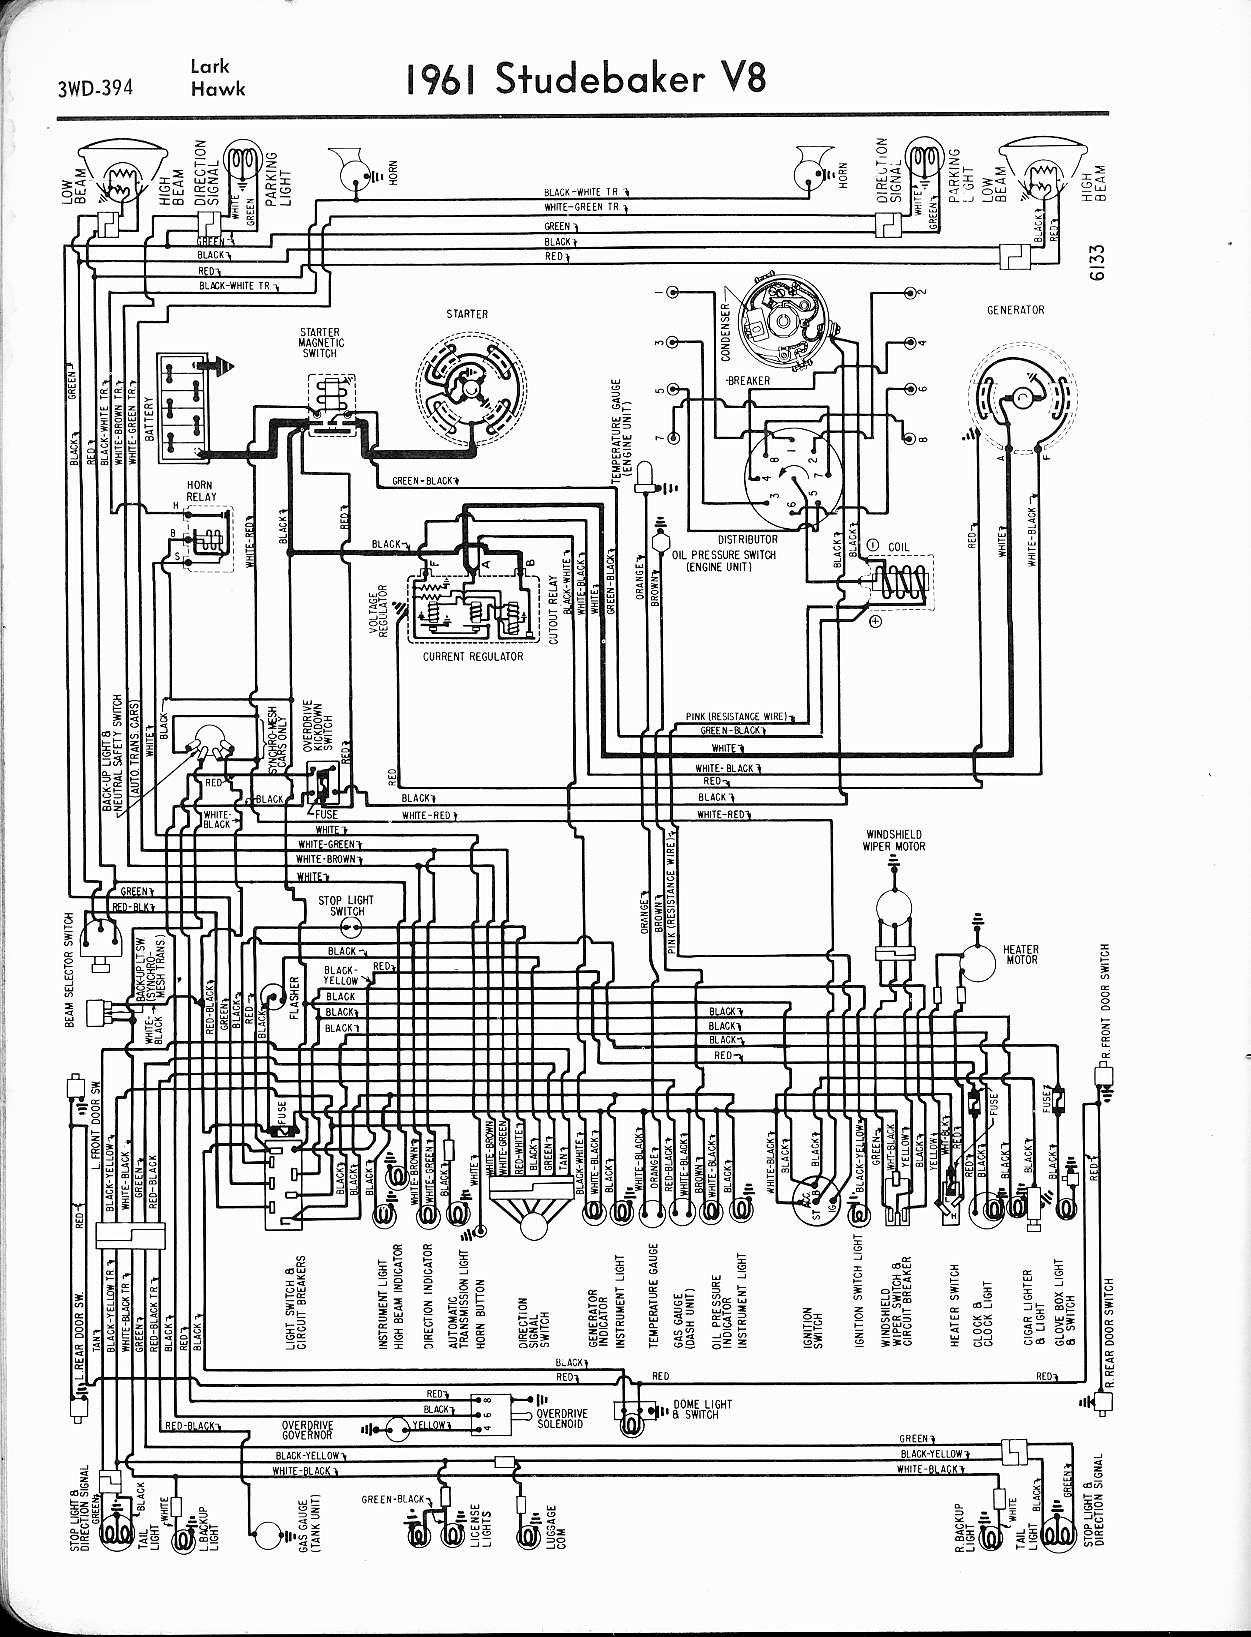 lark enclosed trailer wiring diagram lark automotive wiring diagrams description mwire5765 394 lark enclosed trailer wiring diagram